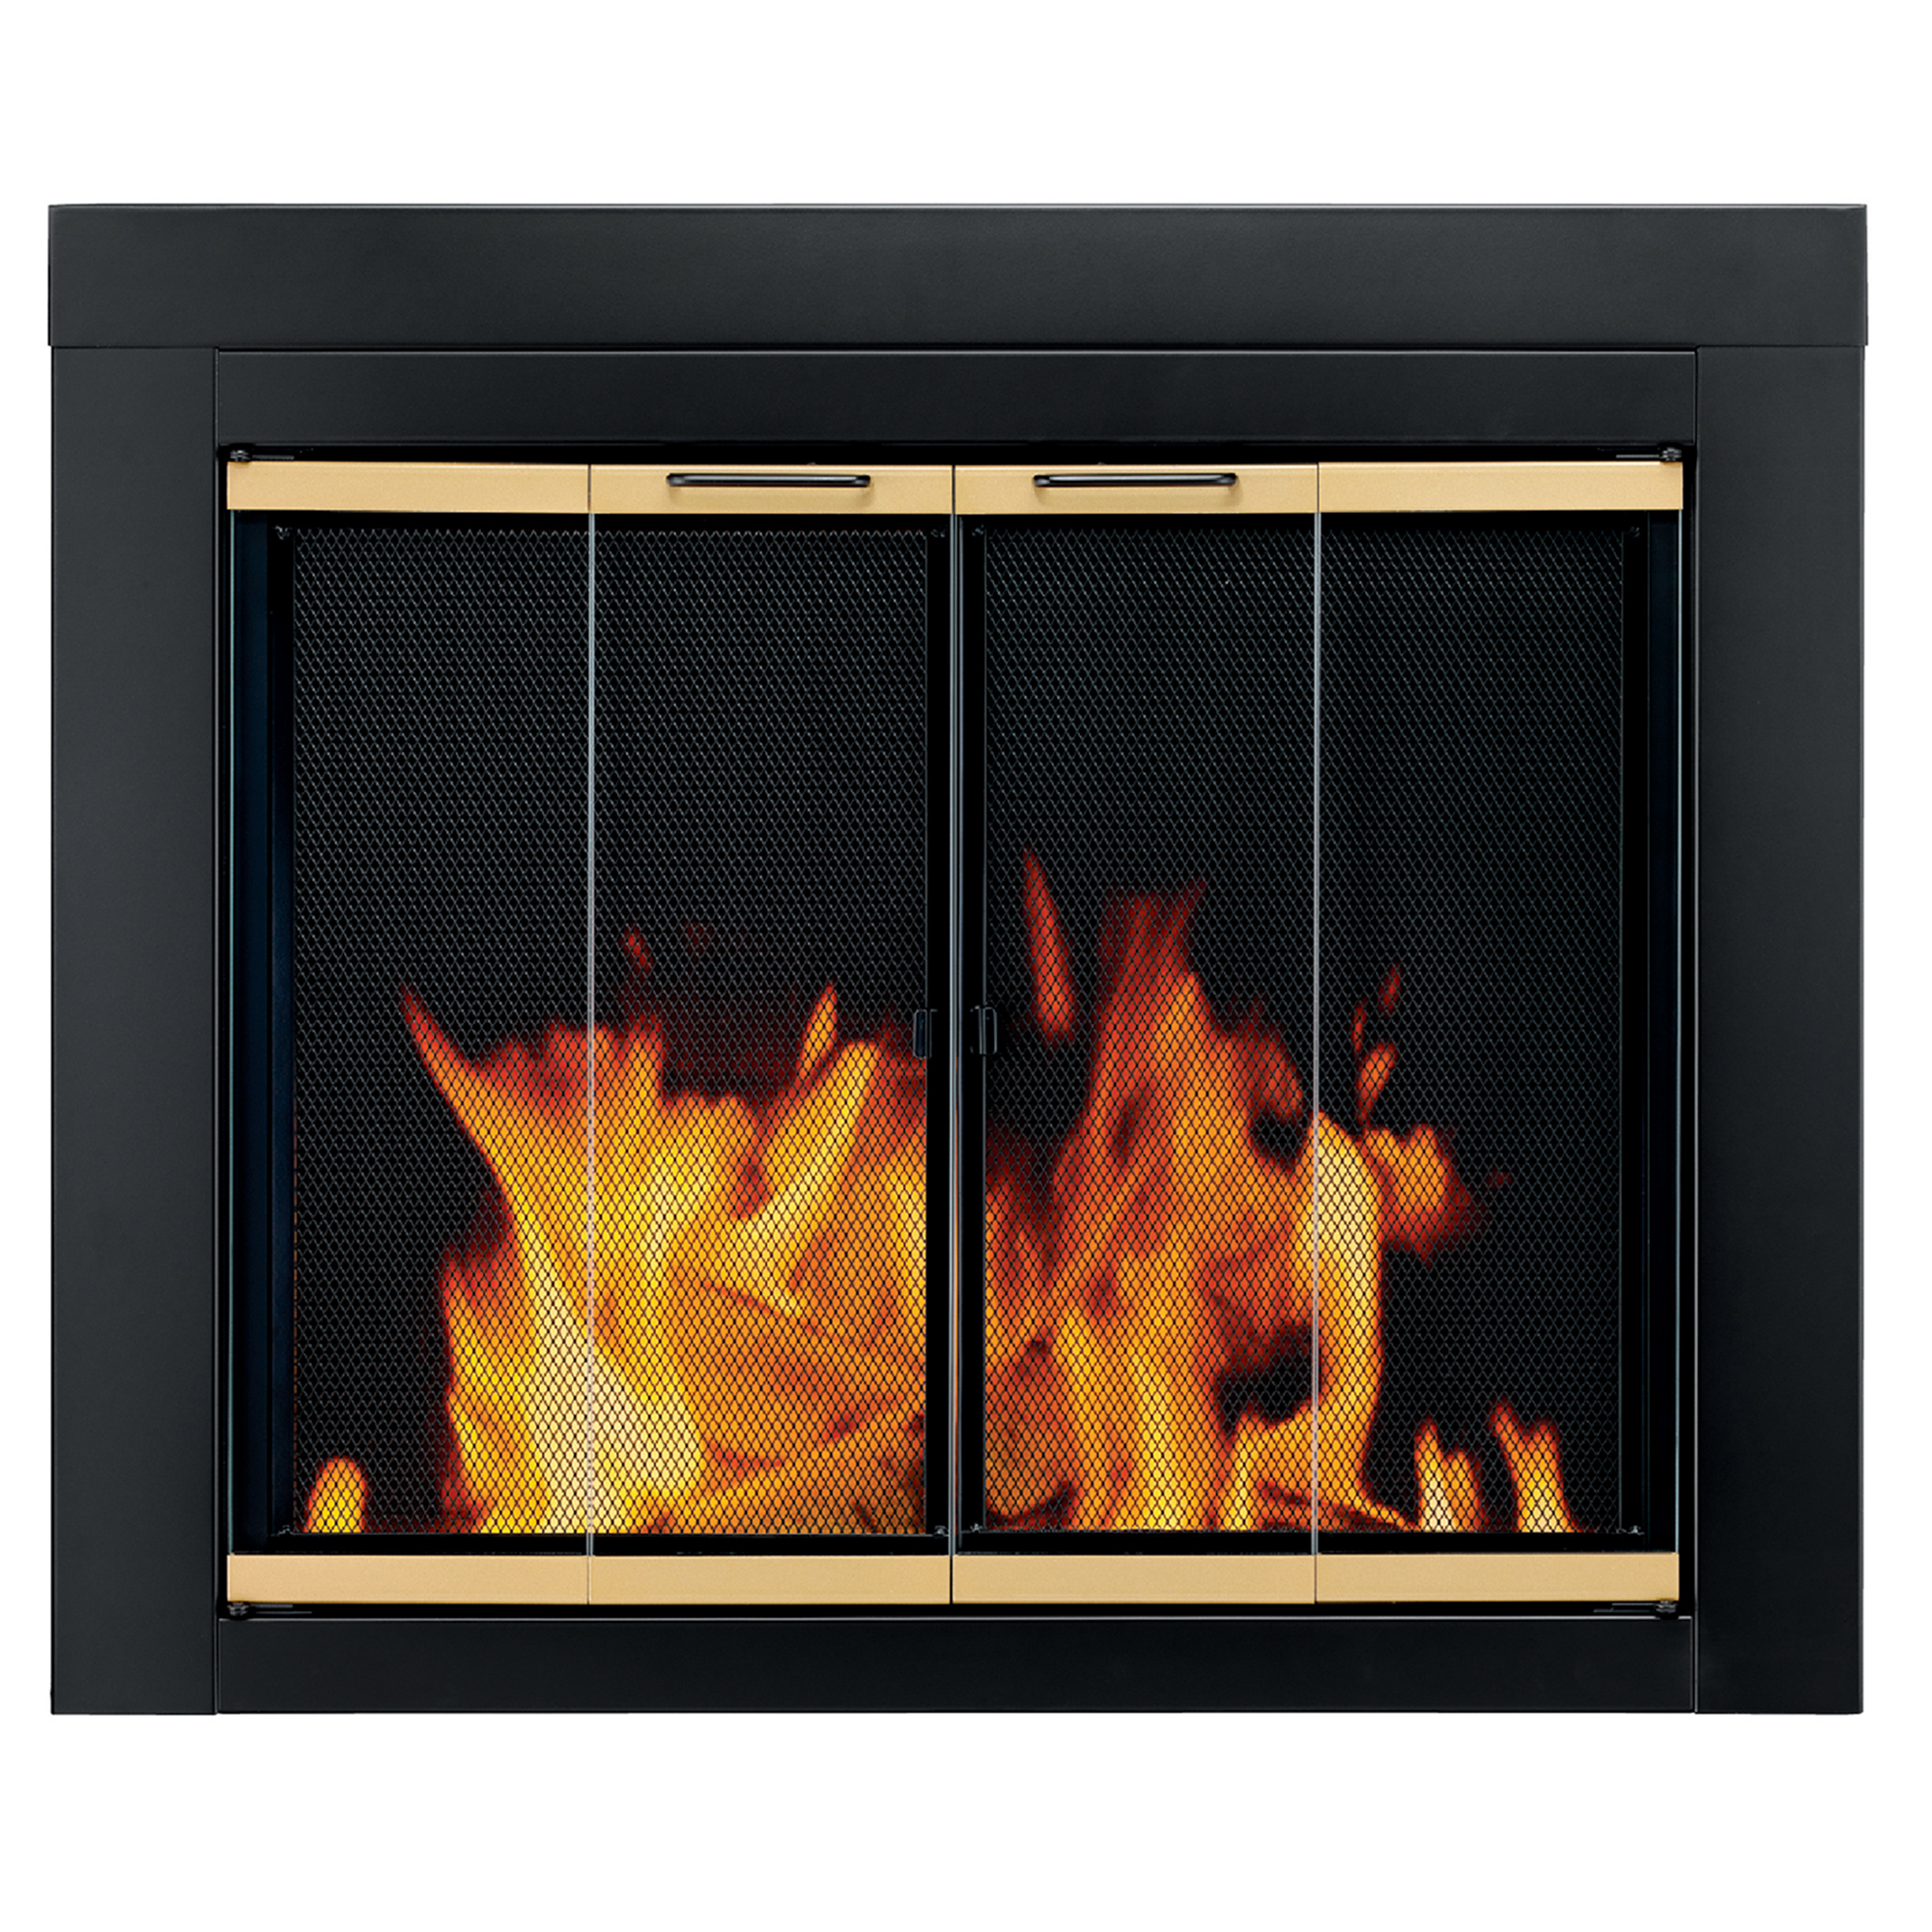 Pleasant Hearth Arrington Black with gold trim Fireplace Glass Firescreen doors - Small